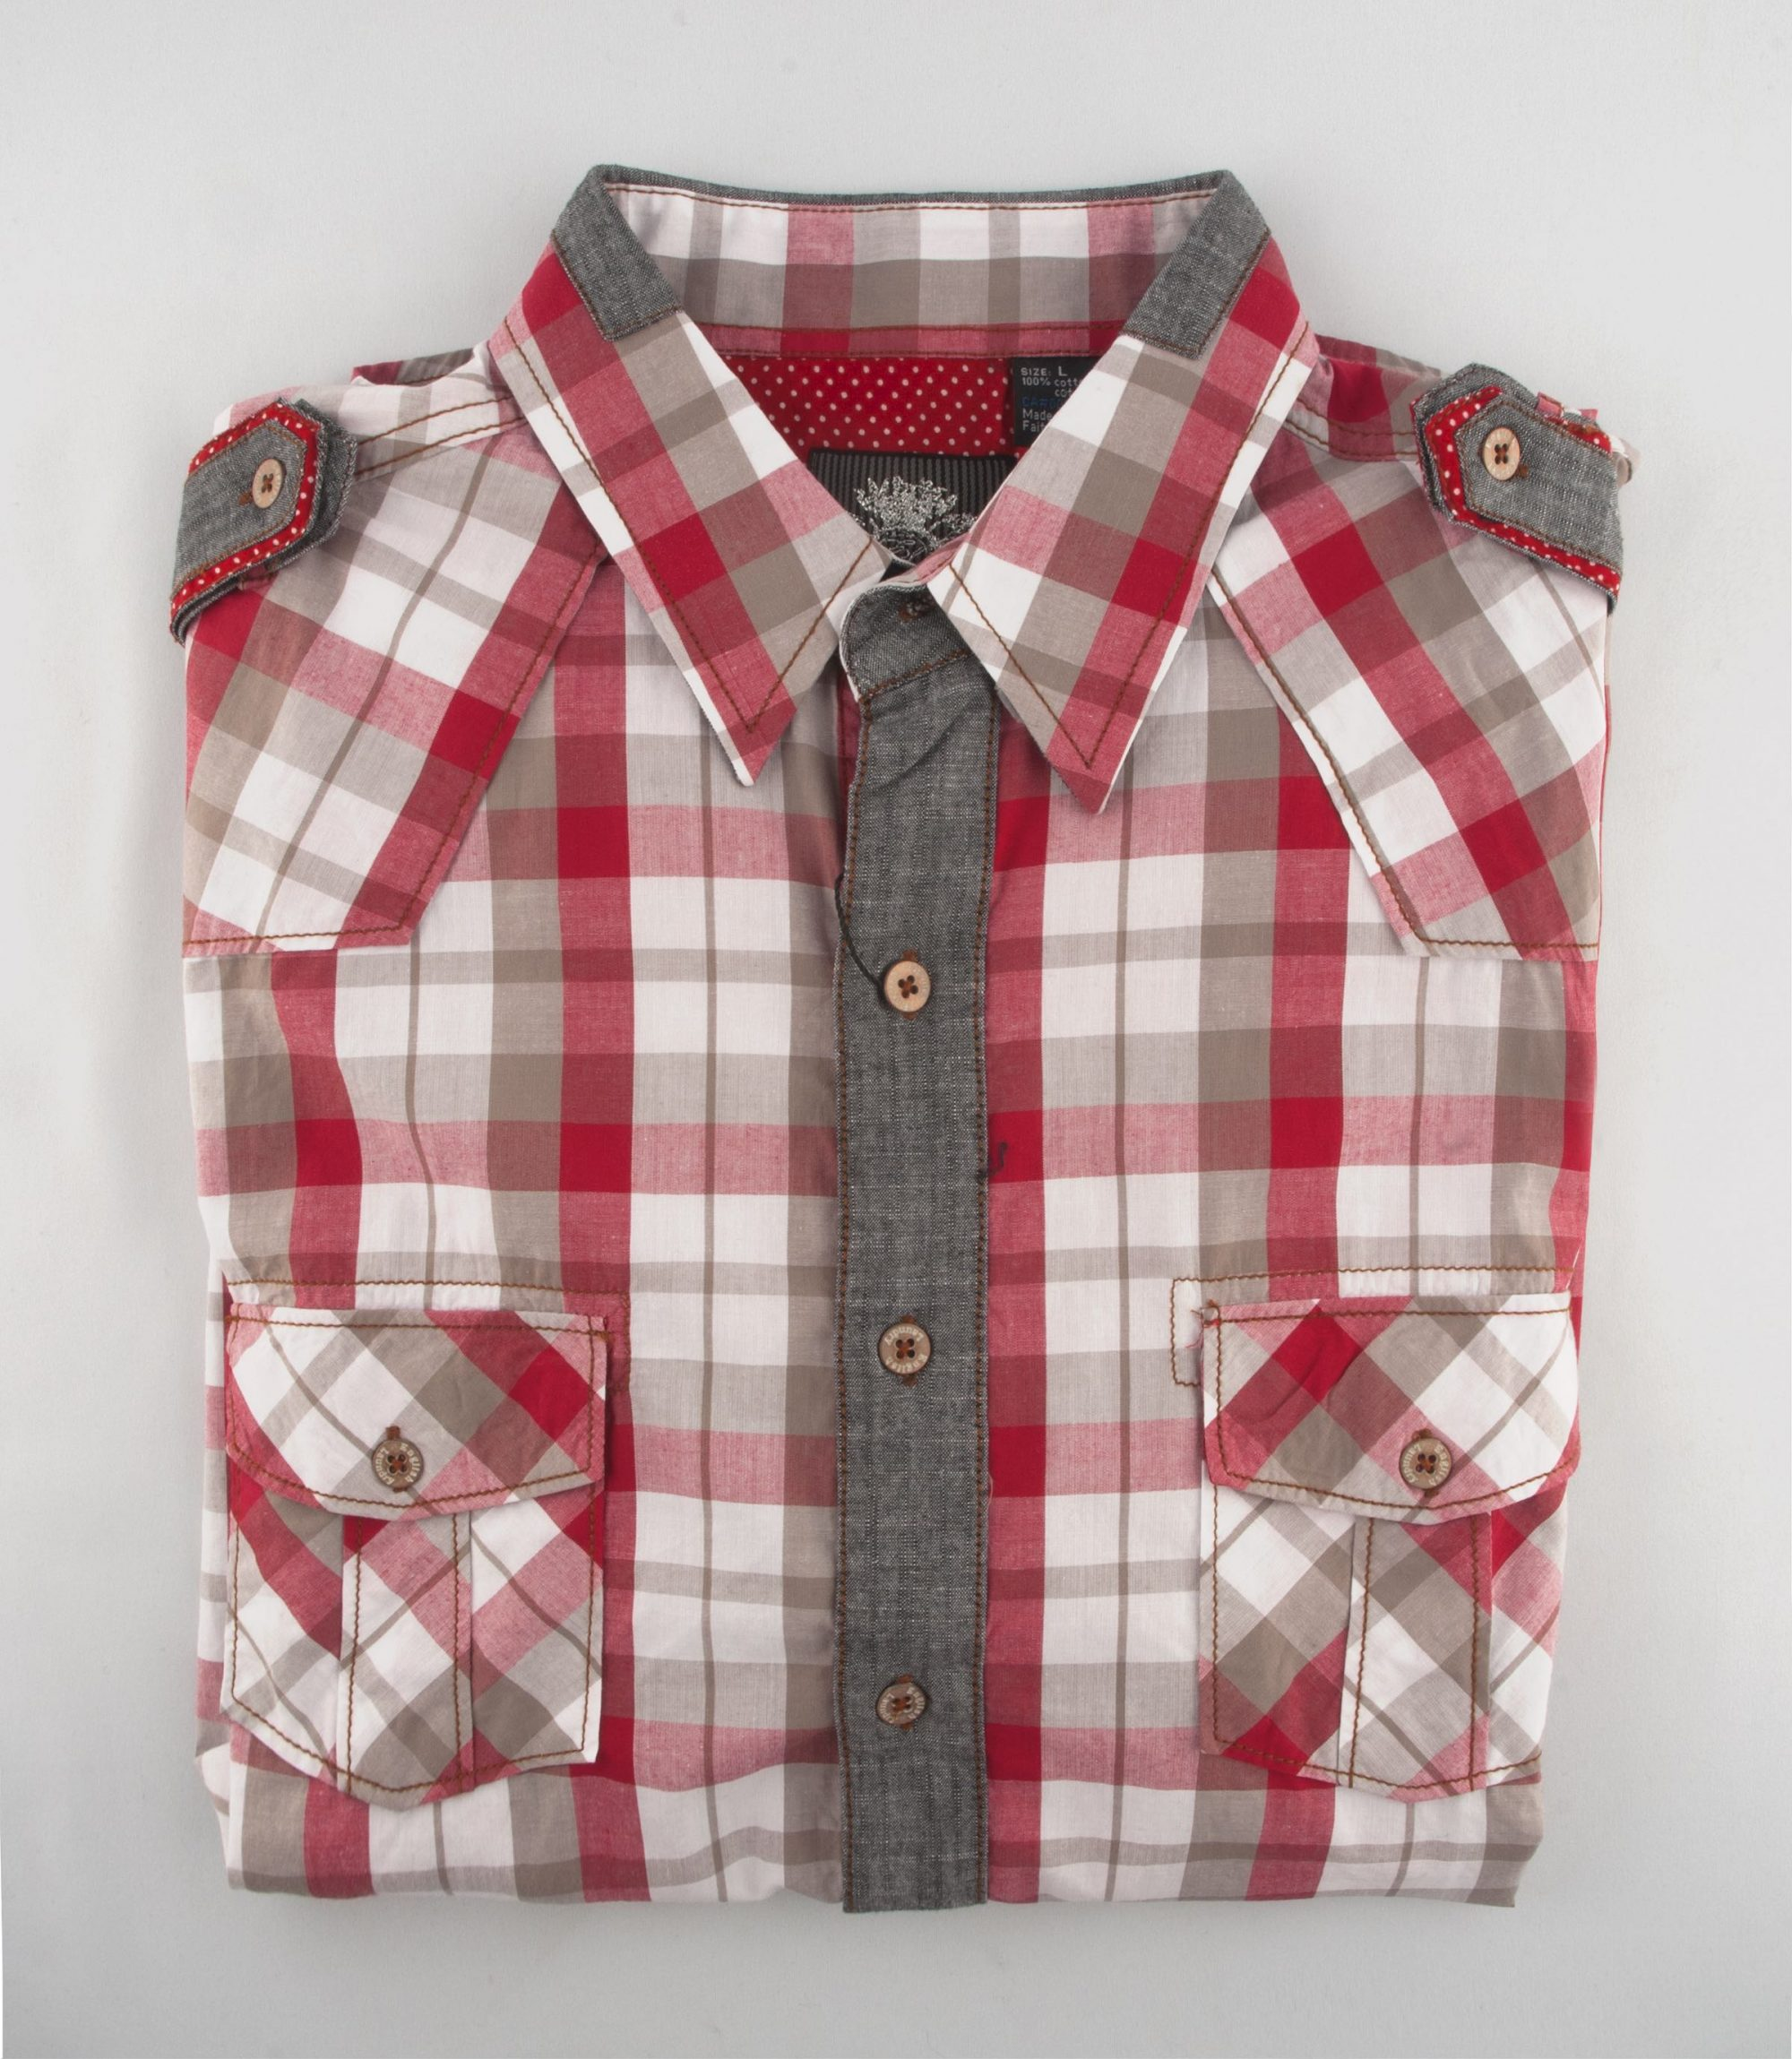 Men's English Laundry shirt, $92, from My Filosophy.